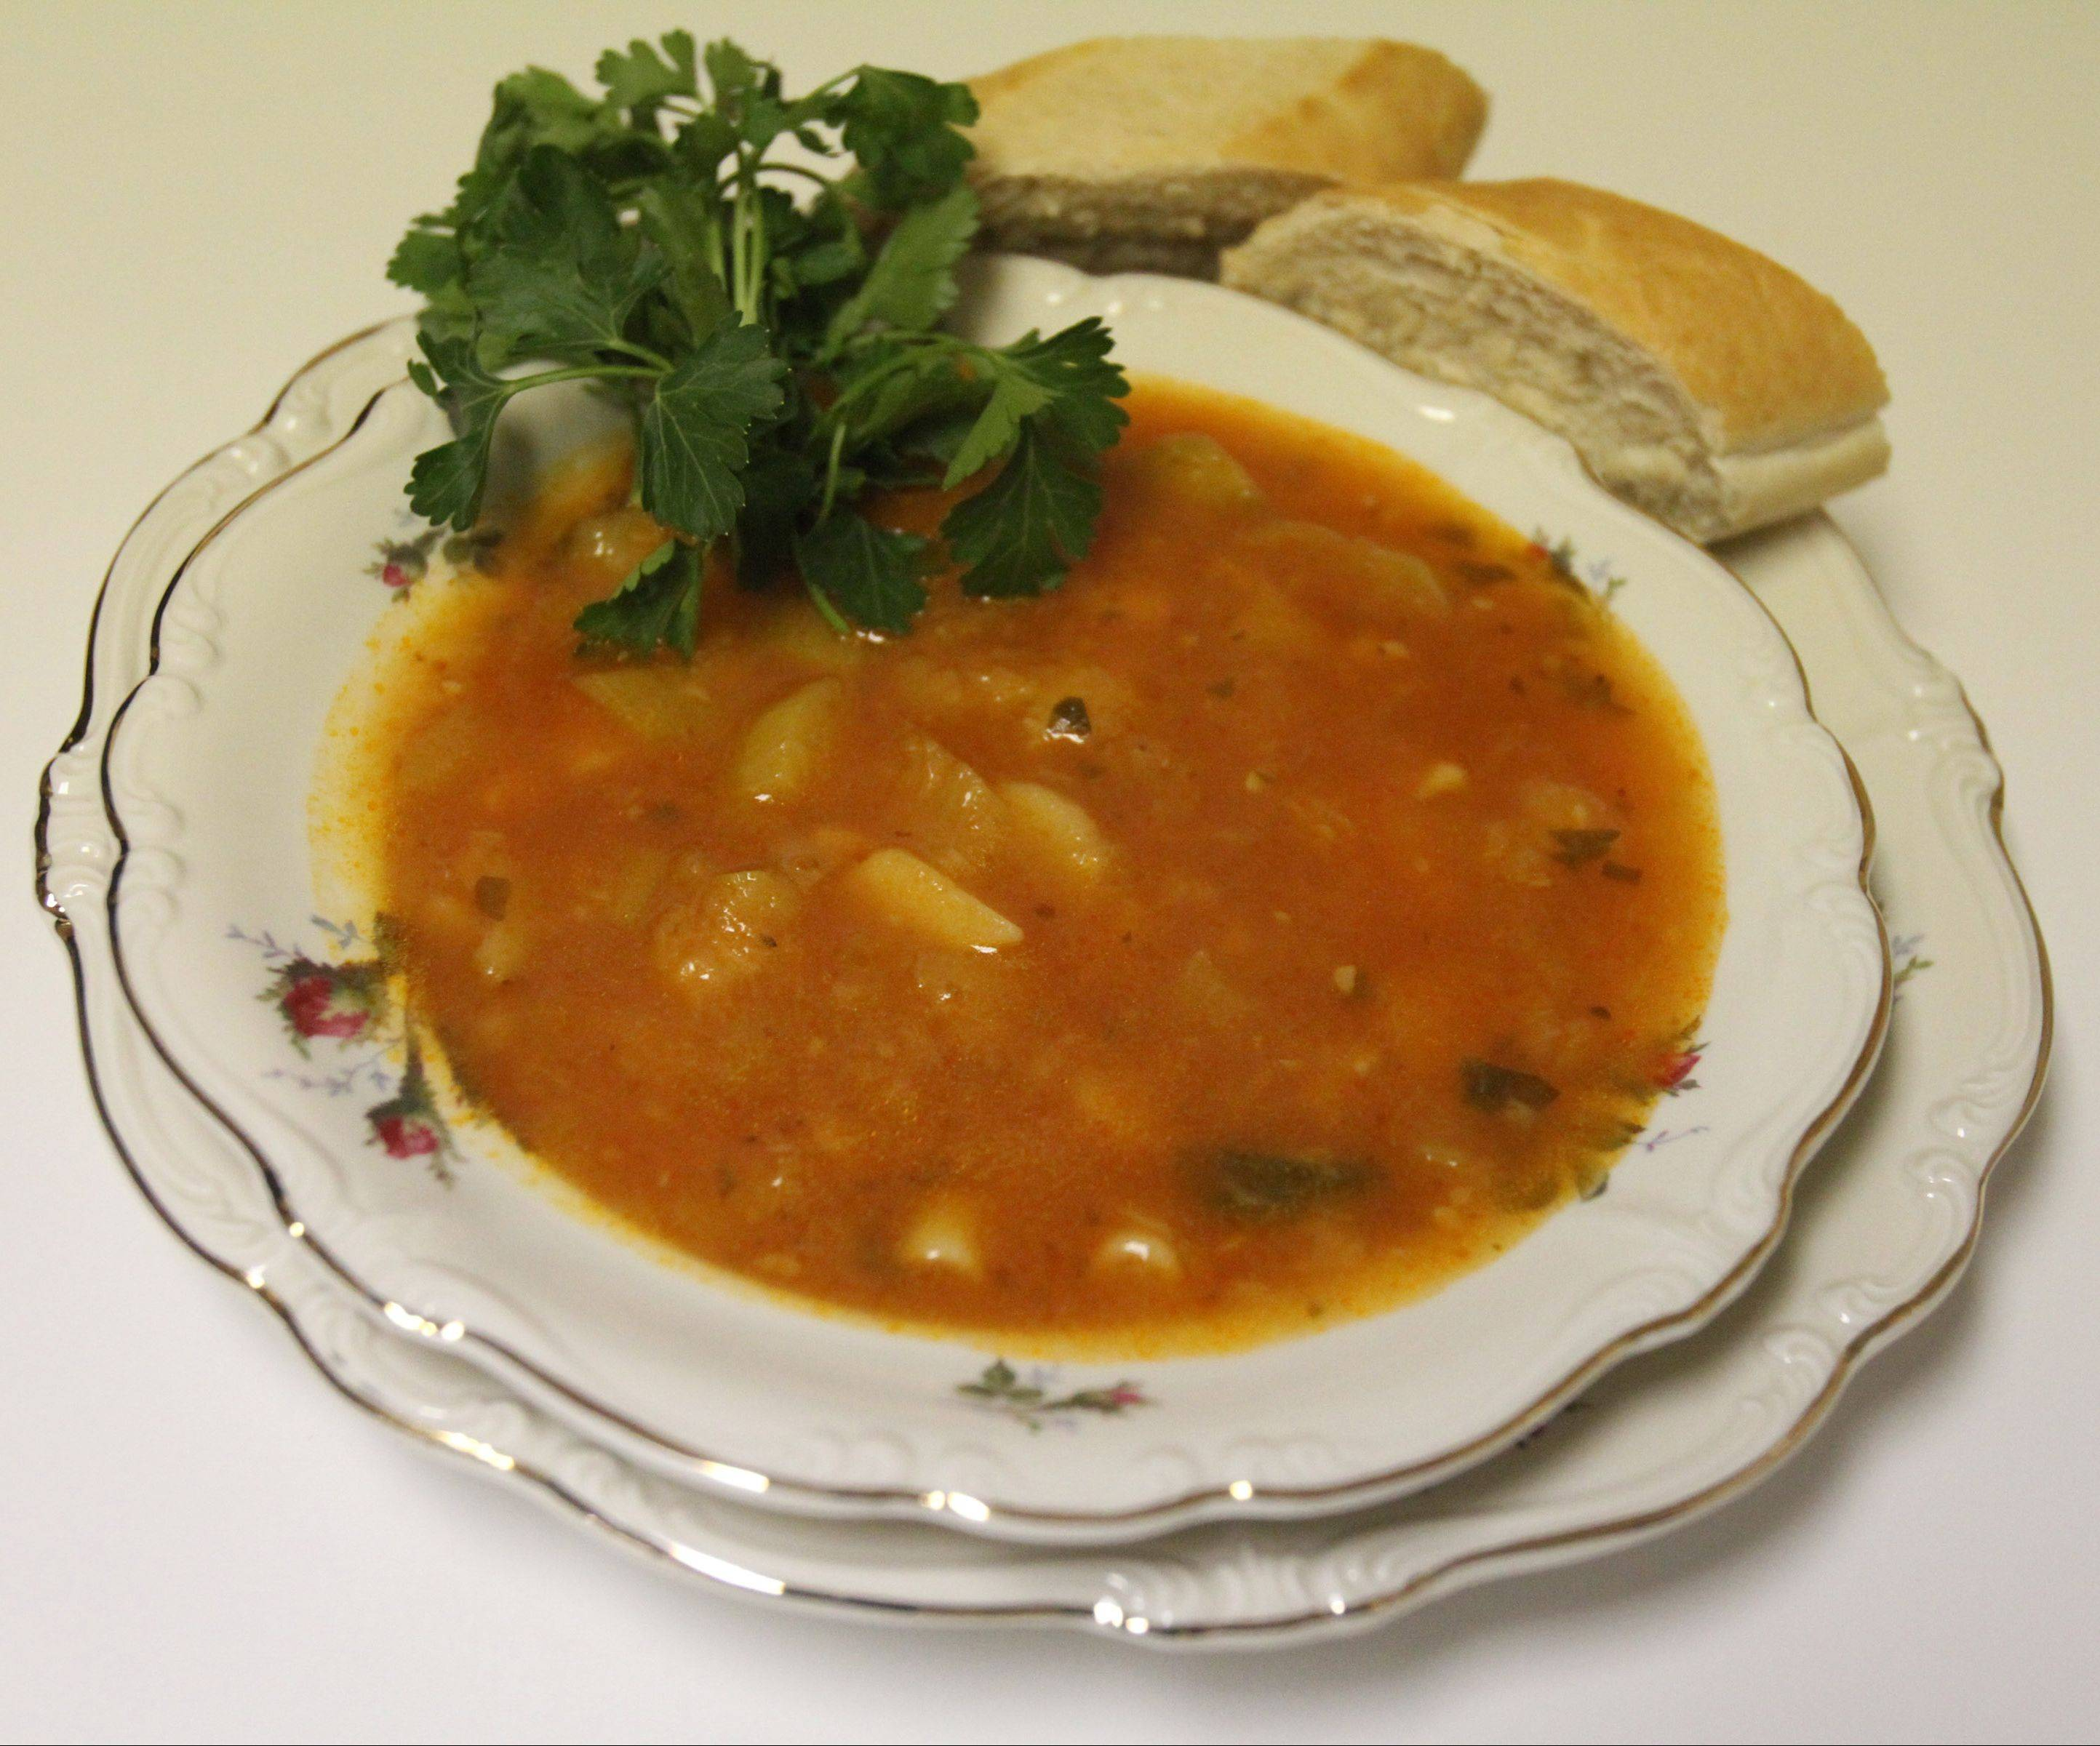 Soup chock full of zucchini, potatoes and herbs is one of Angie Gergen�s most beloved recipes.